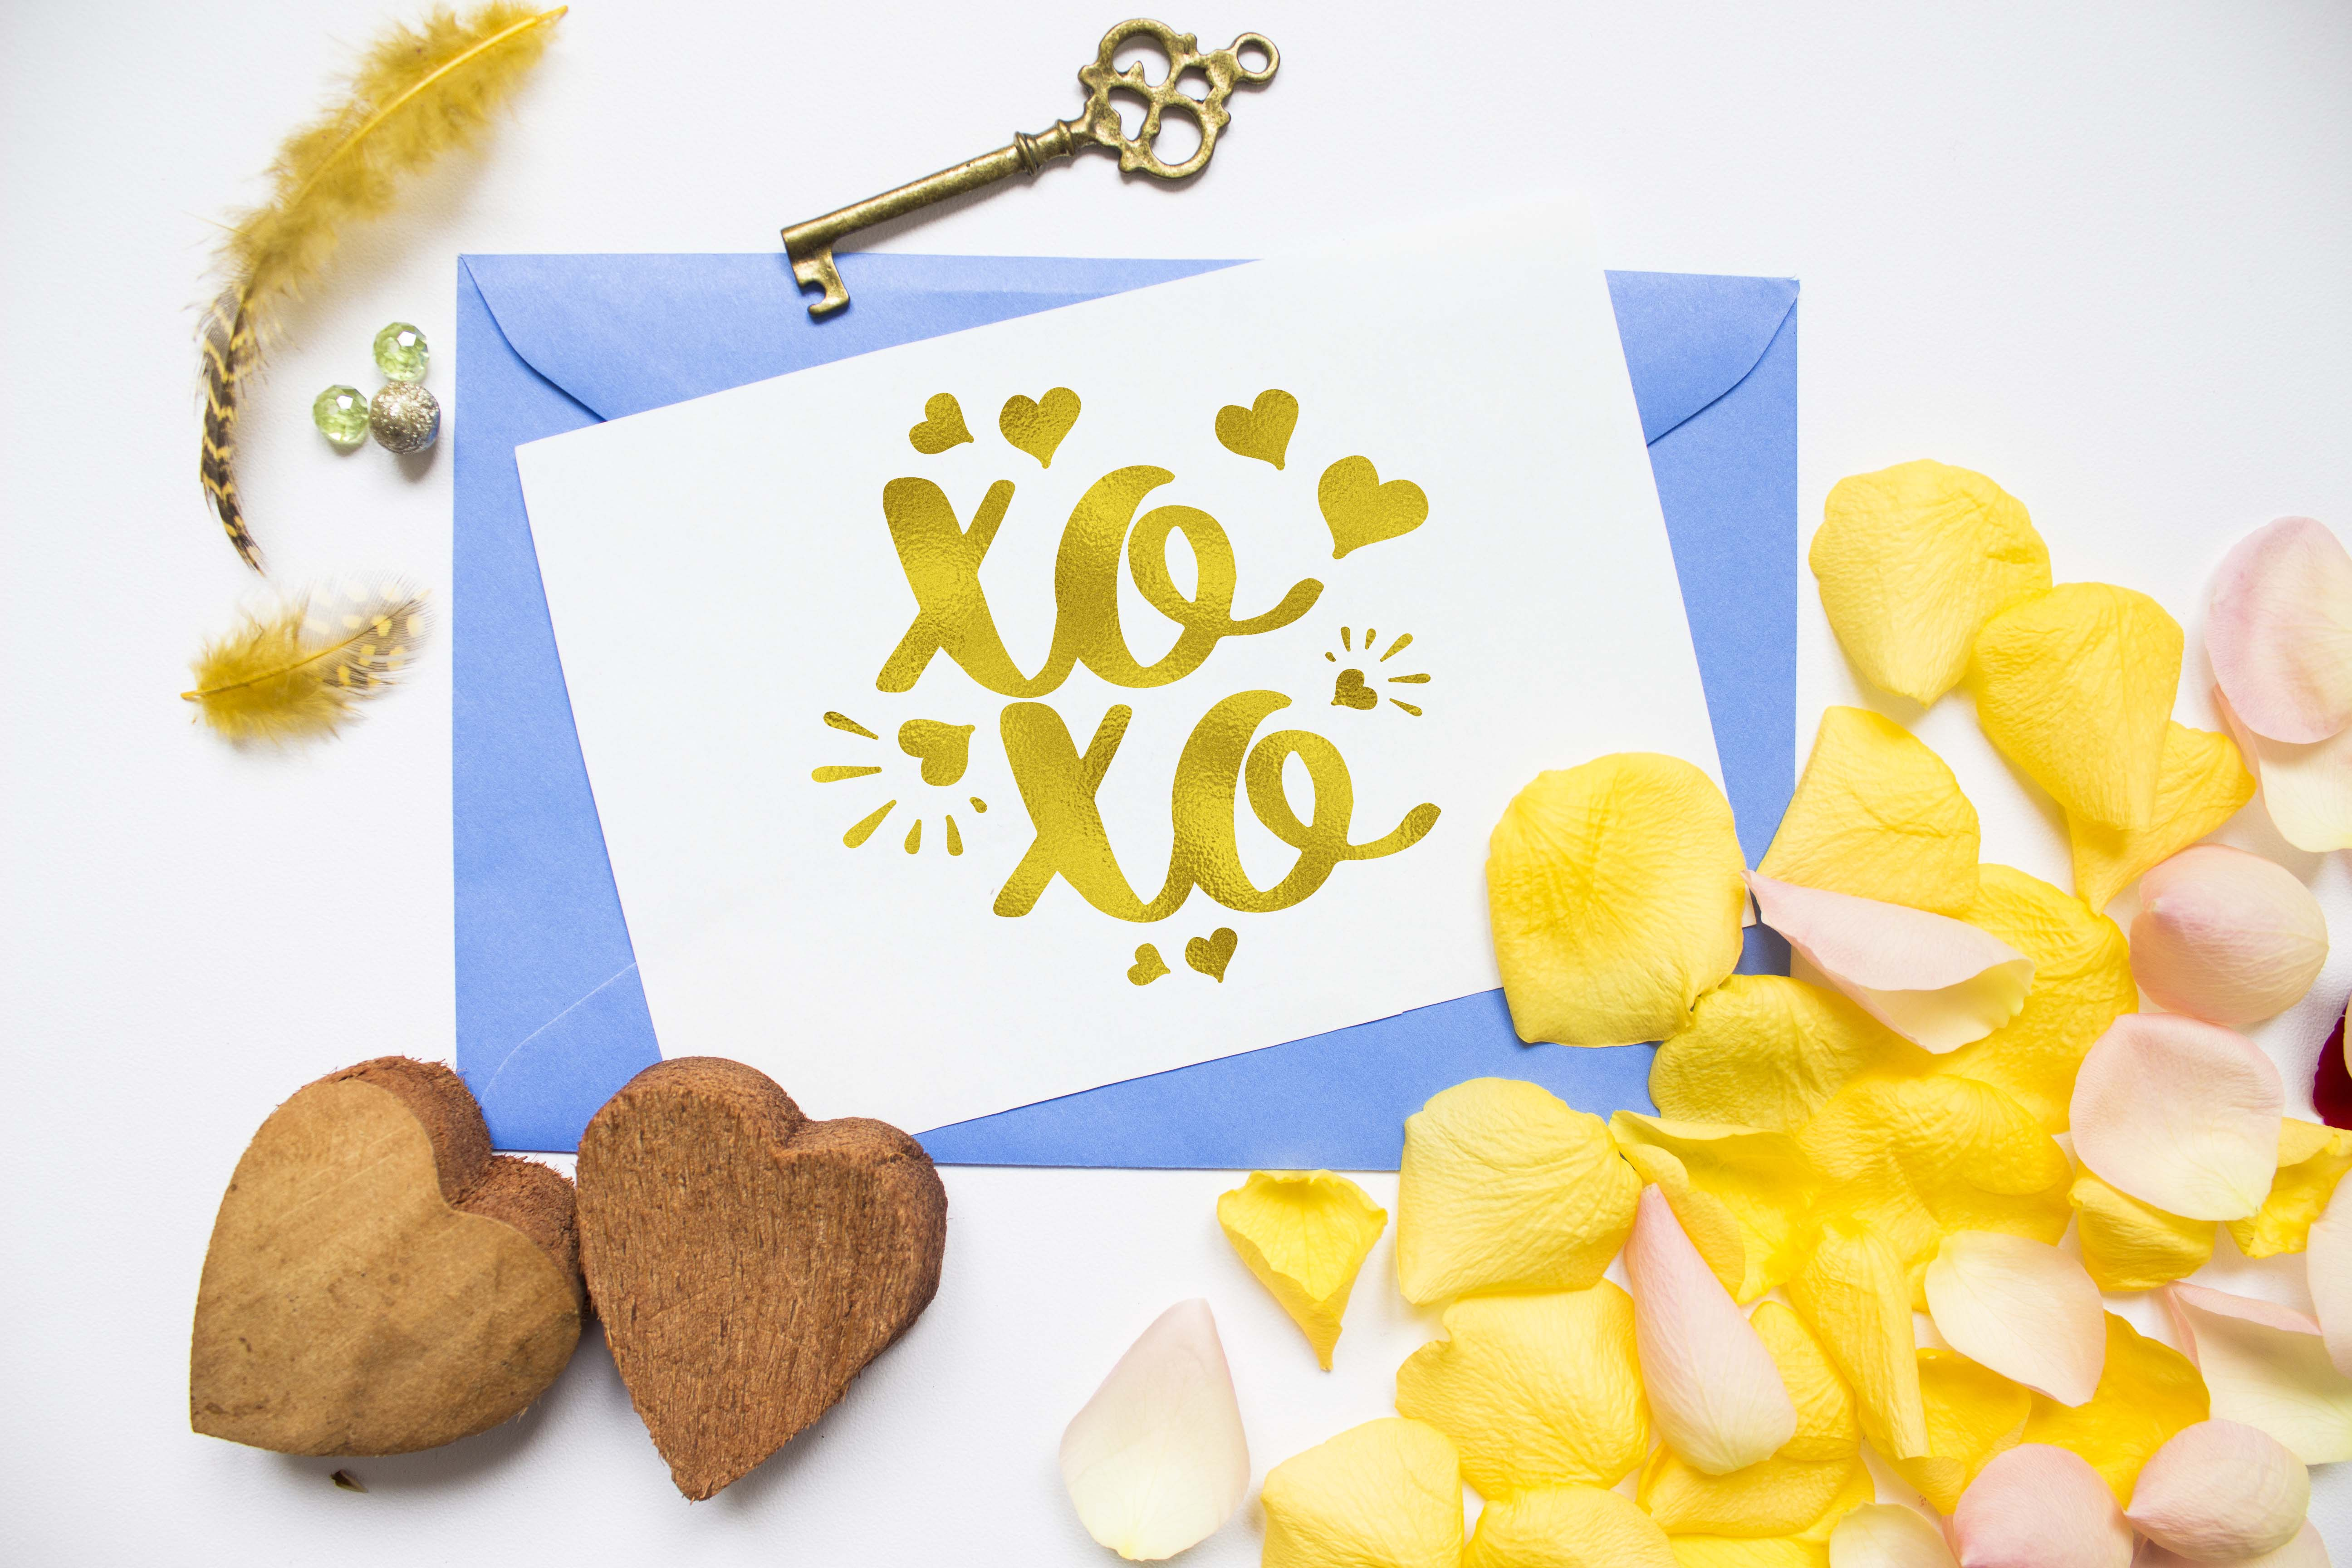 XOXO Svg Hugs and kisses SVG PNG EPS DXF Hearts svg design example image 2